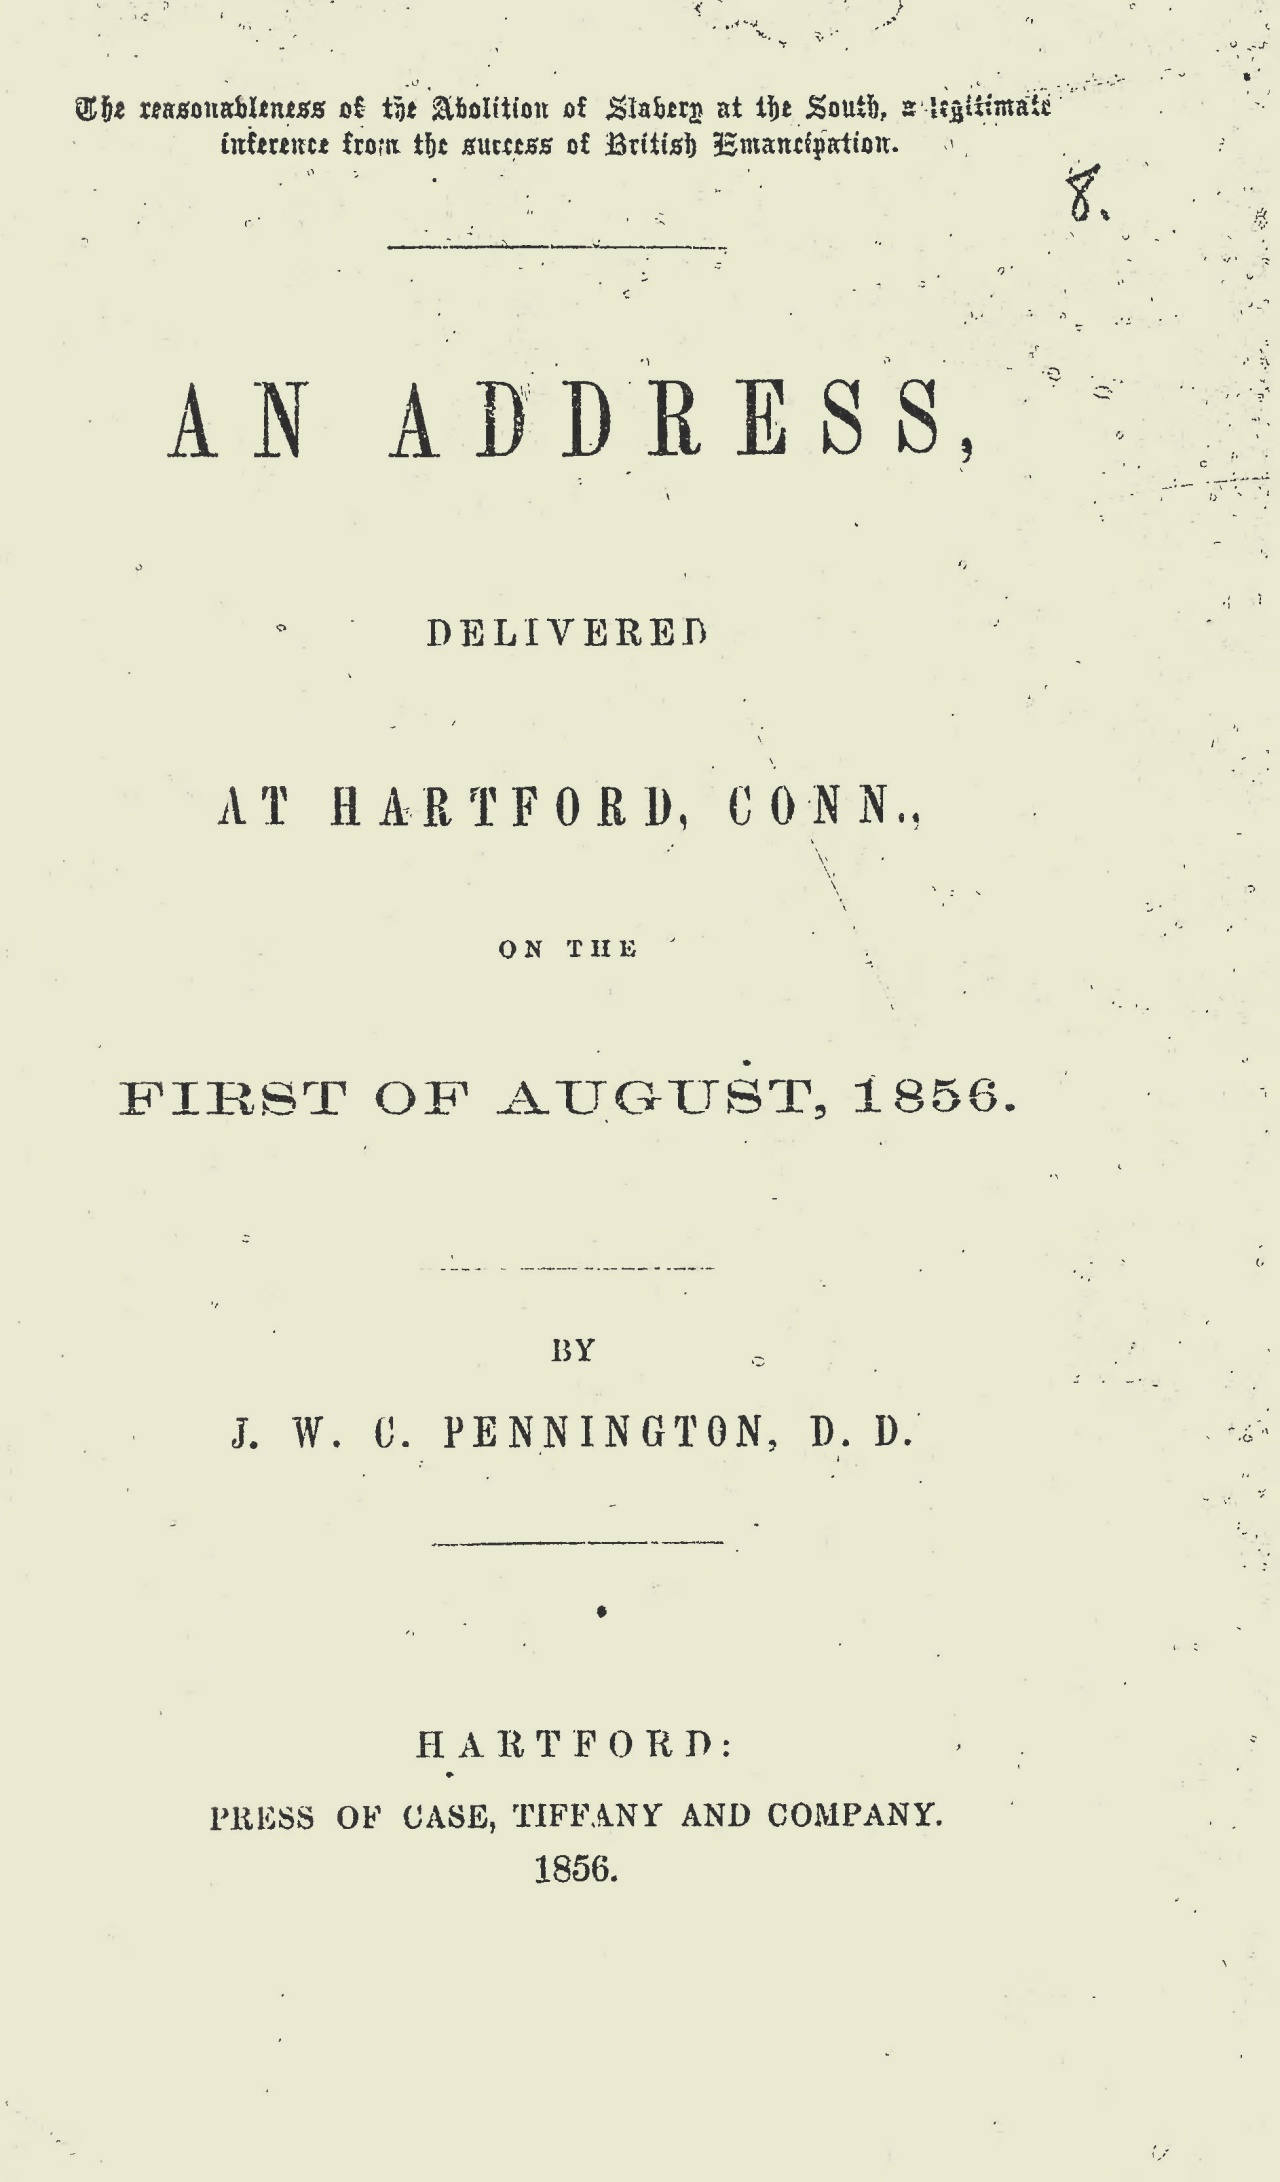 Pennington, James W.C., The Reasonableness of the Abolition of Slavery at the South Title Page.jpg